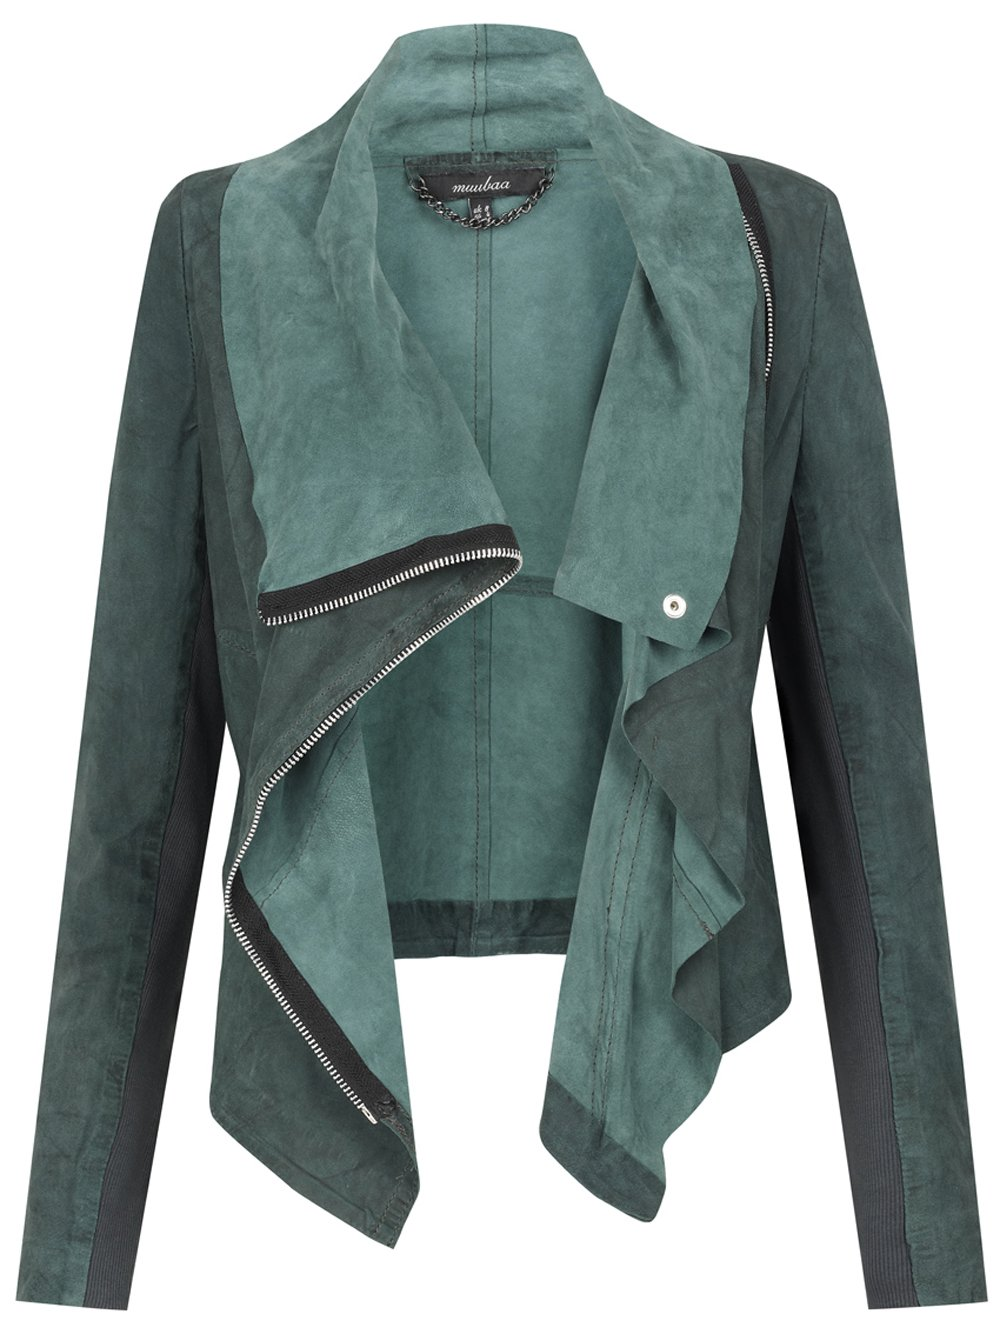 Suede Jacket Outfits For Men 20 Ways To Wear A Suede Jacket: Alexis Drape Suede Jacket In Cyan